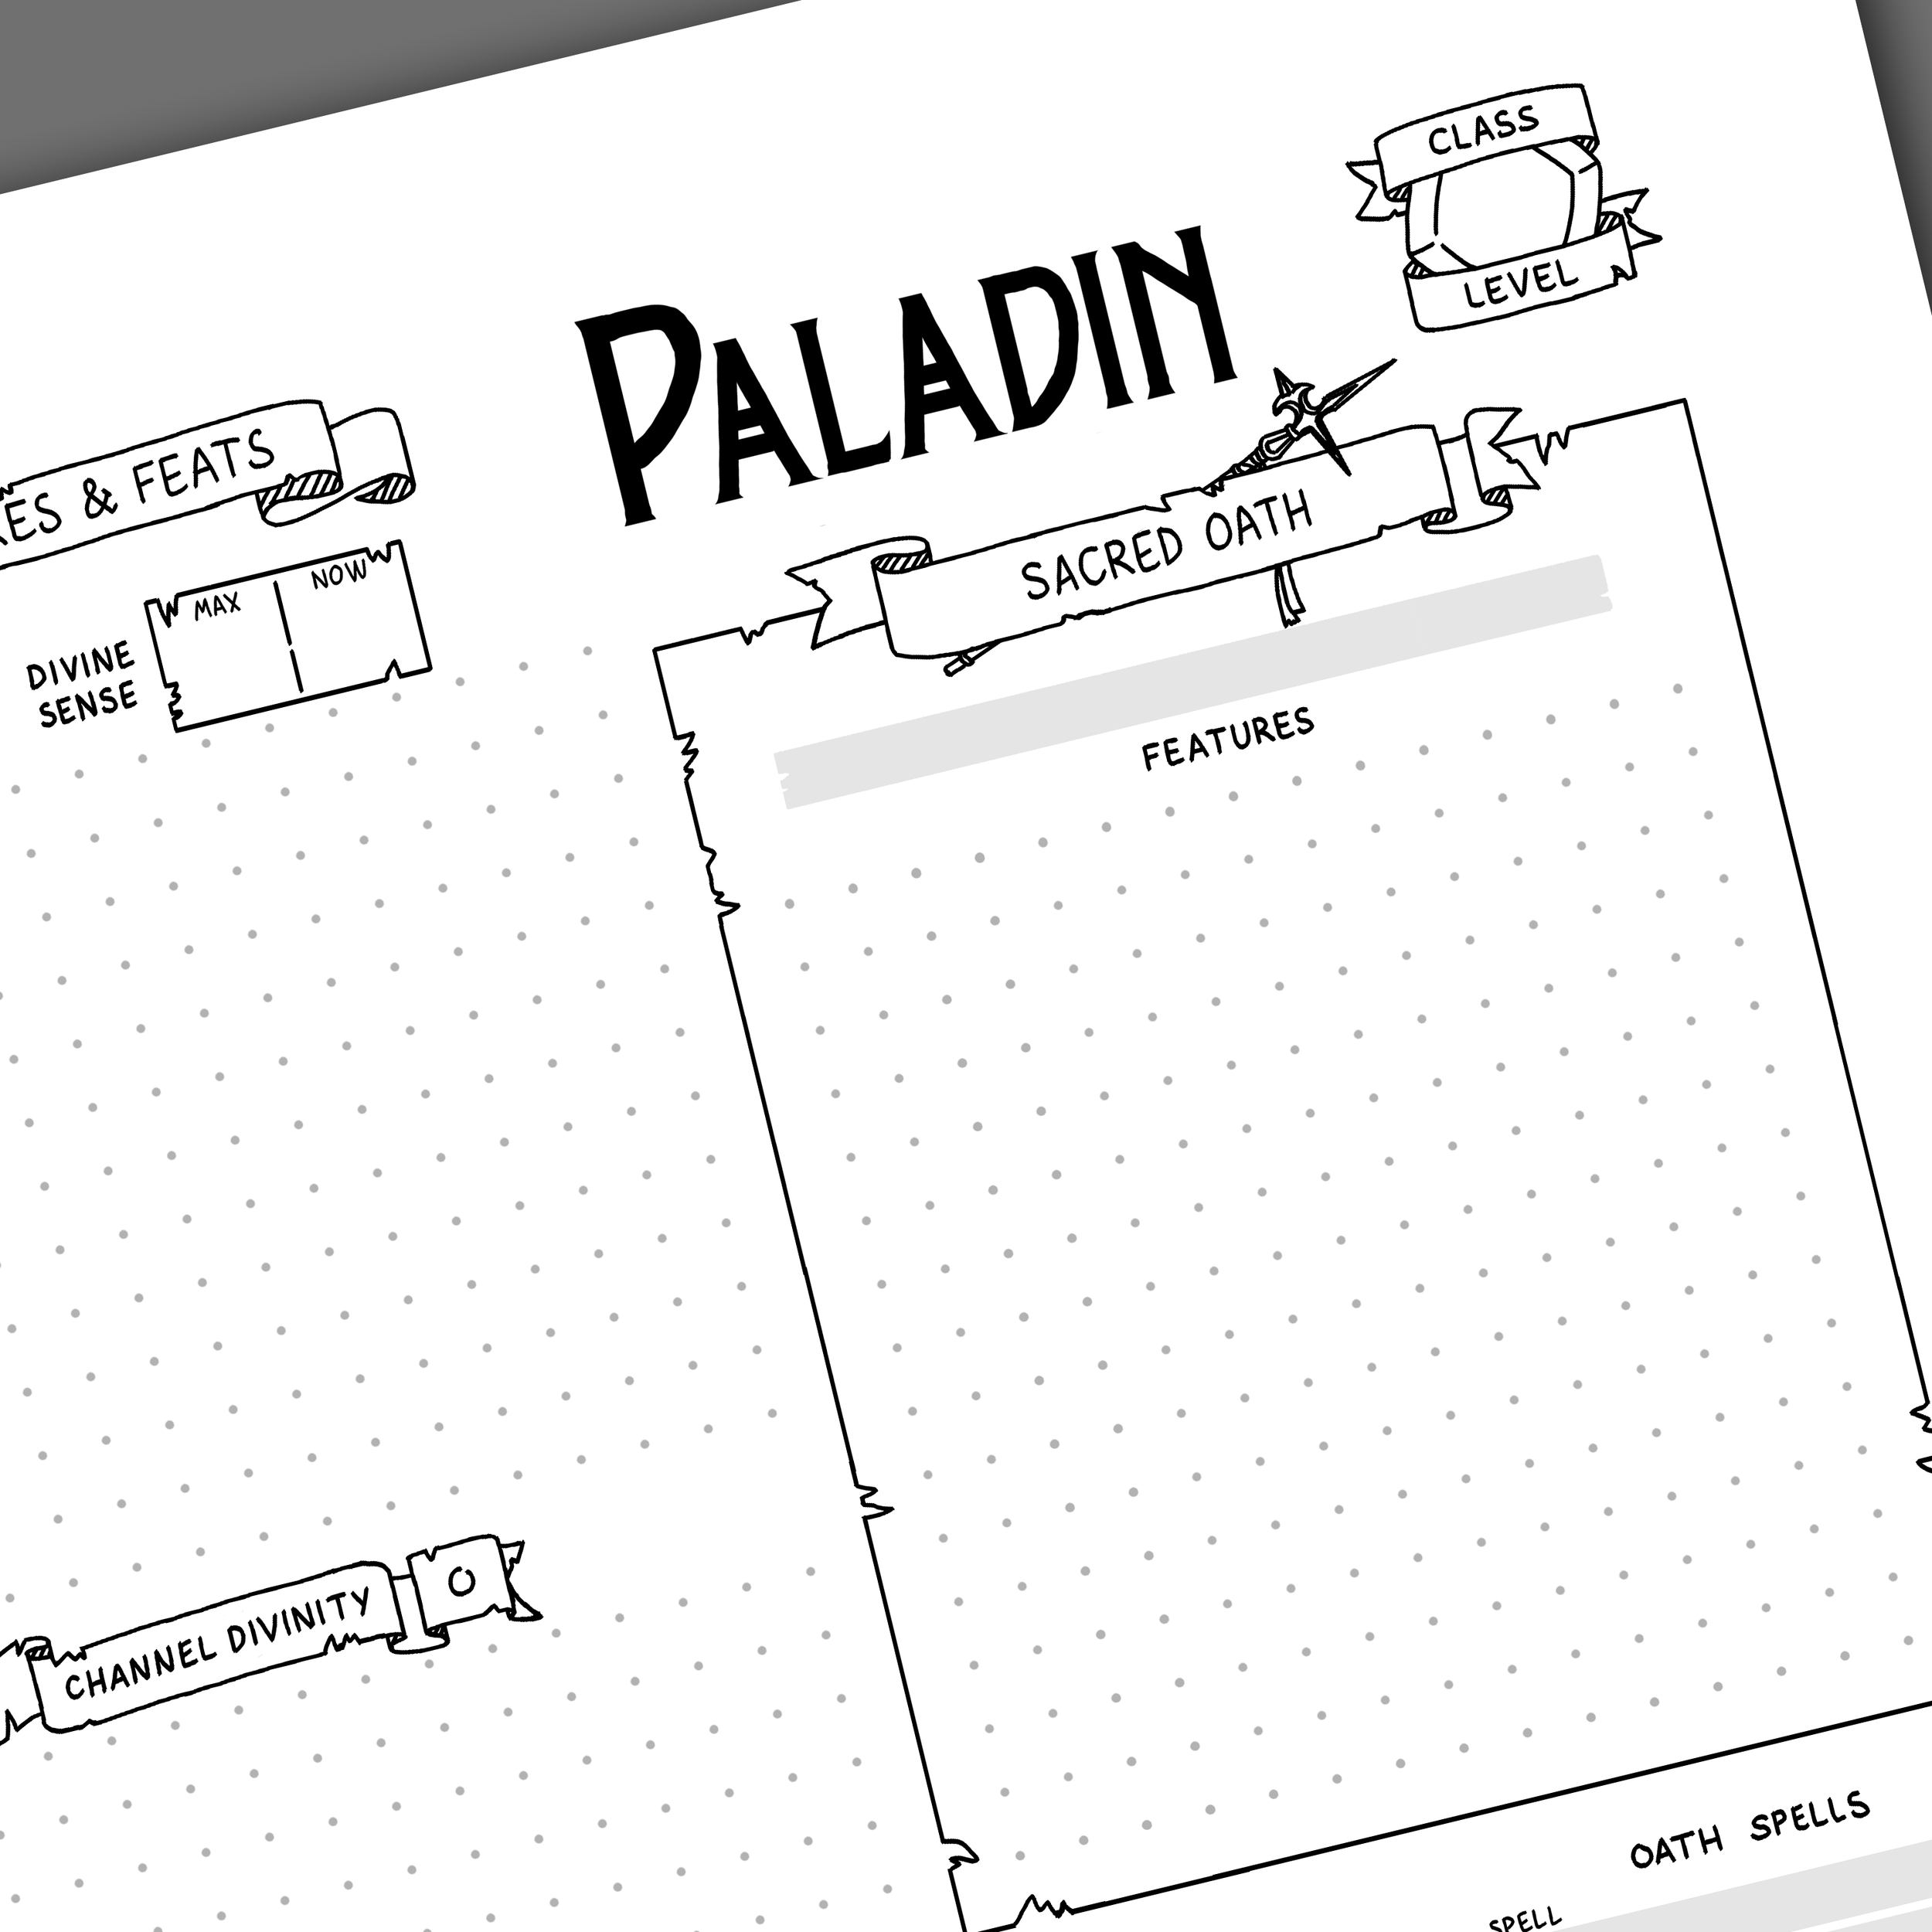 photograph about 5e Character Sheet Printable called 5th Model Paladin Temperament Sheet Video games Things by means of Julien